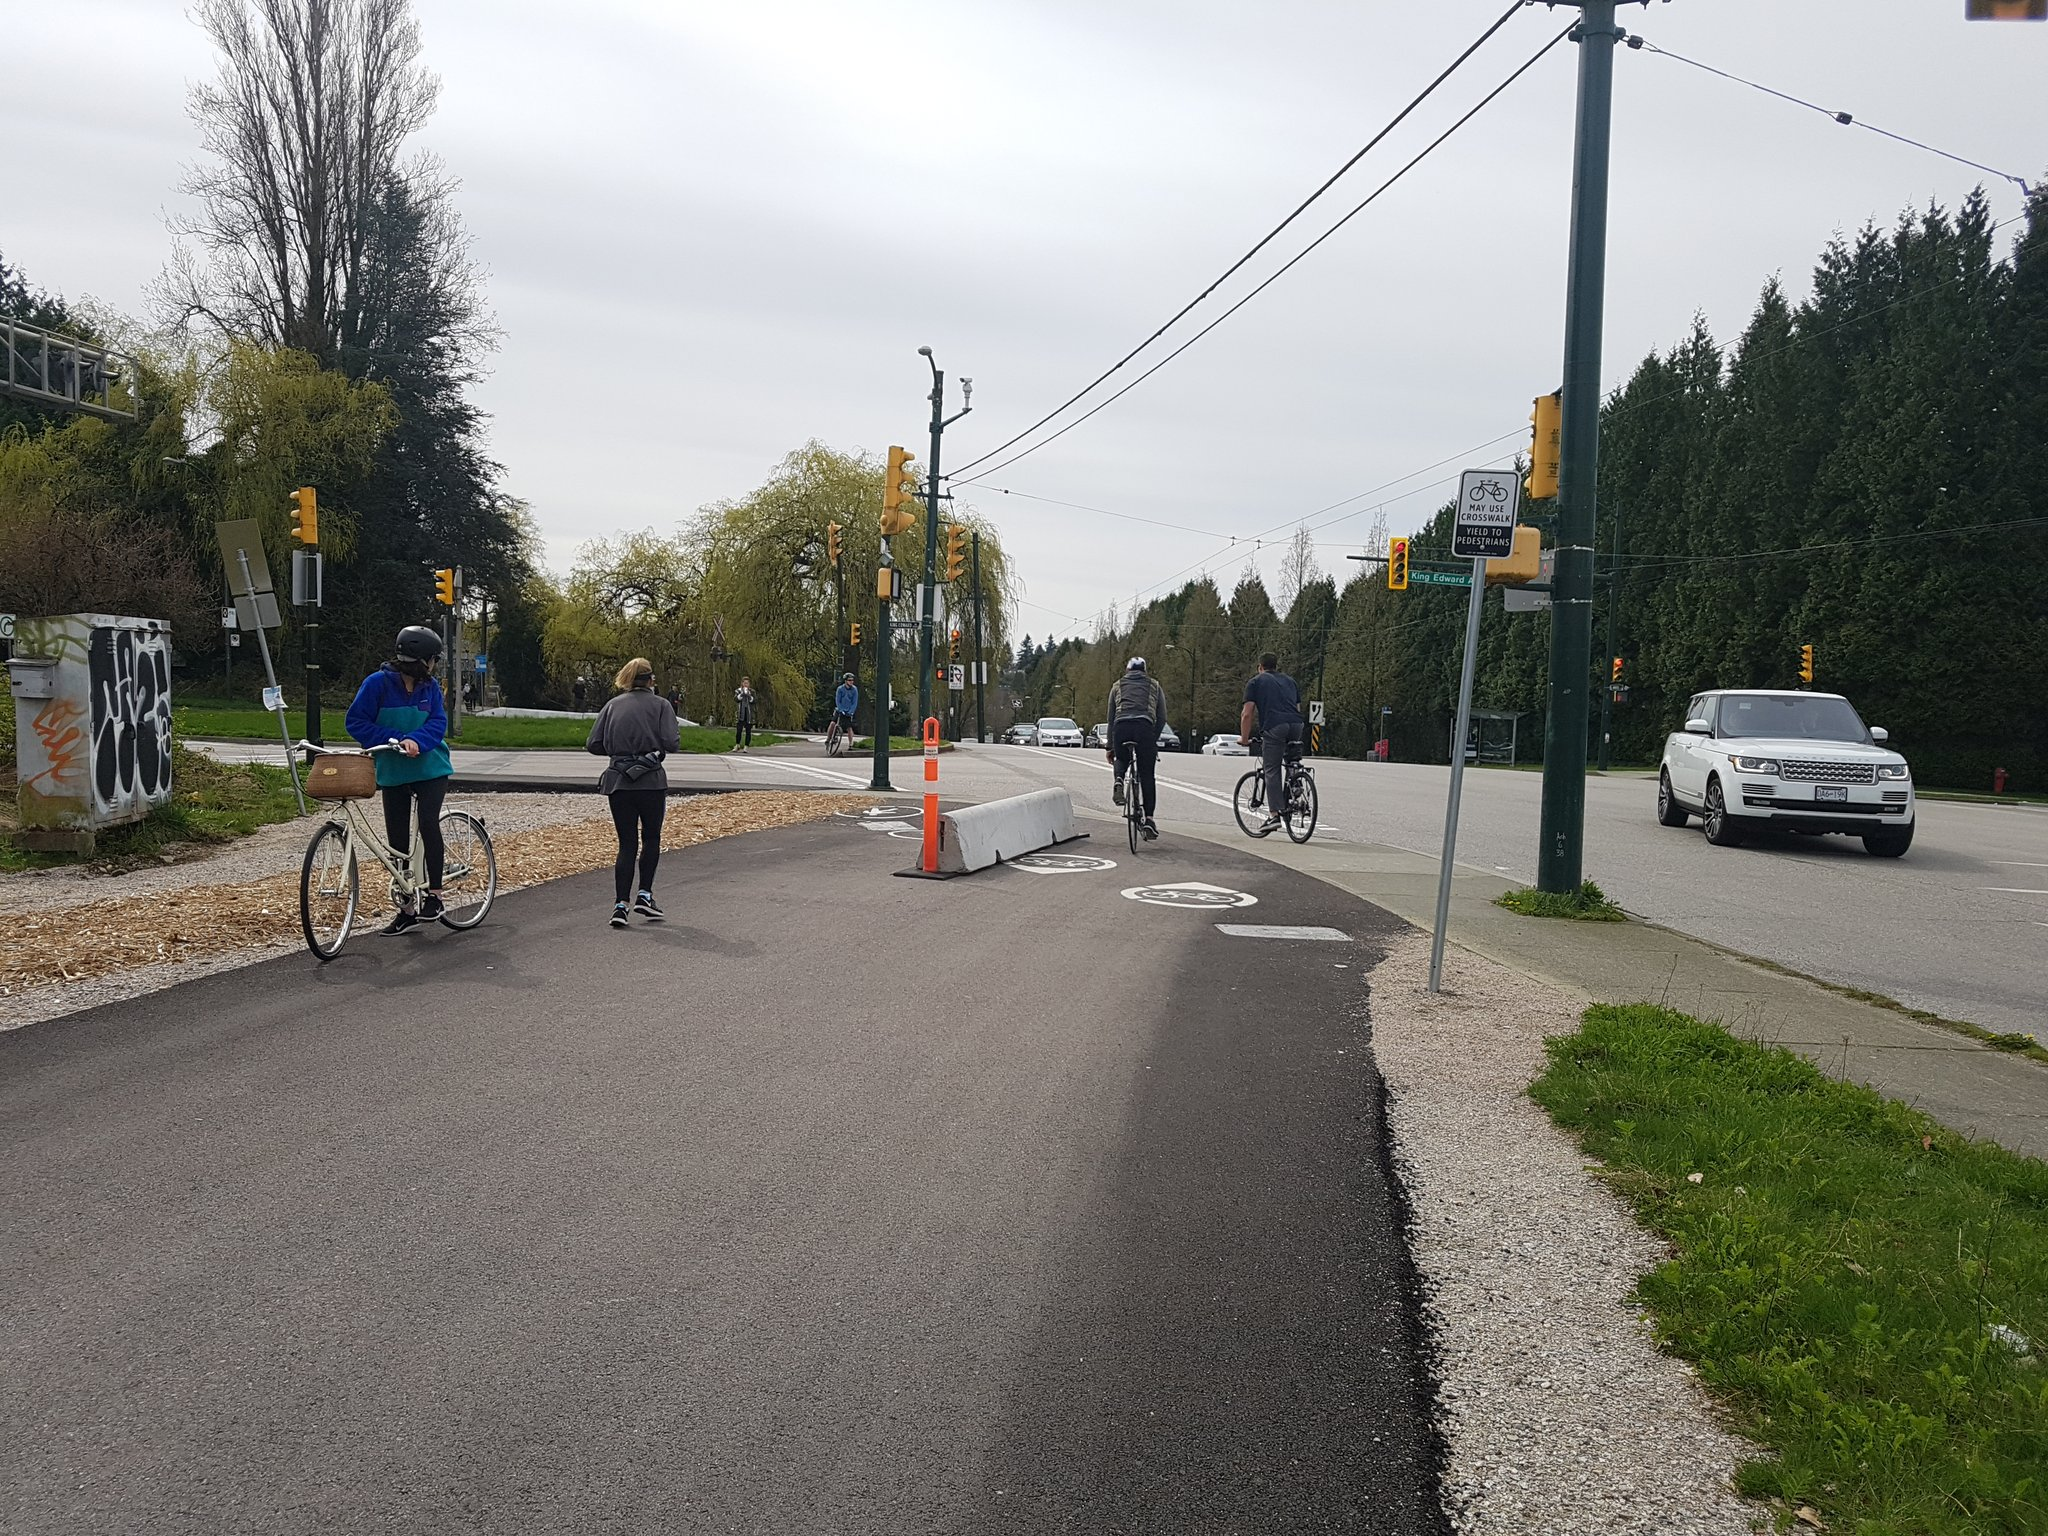 And the beginnings of separation of walking & biking on what is already a busy trail #yyjbike https://t.co/1iTmE8wgS3